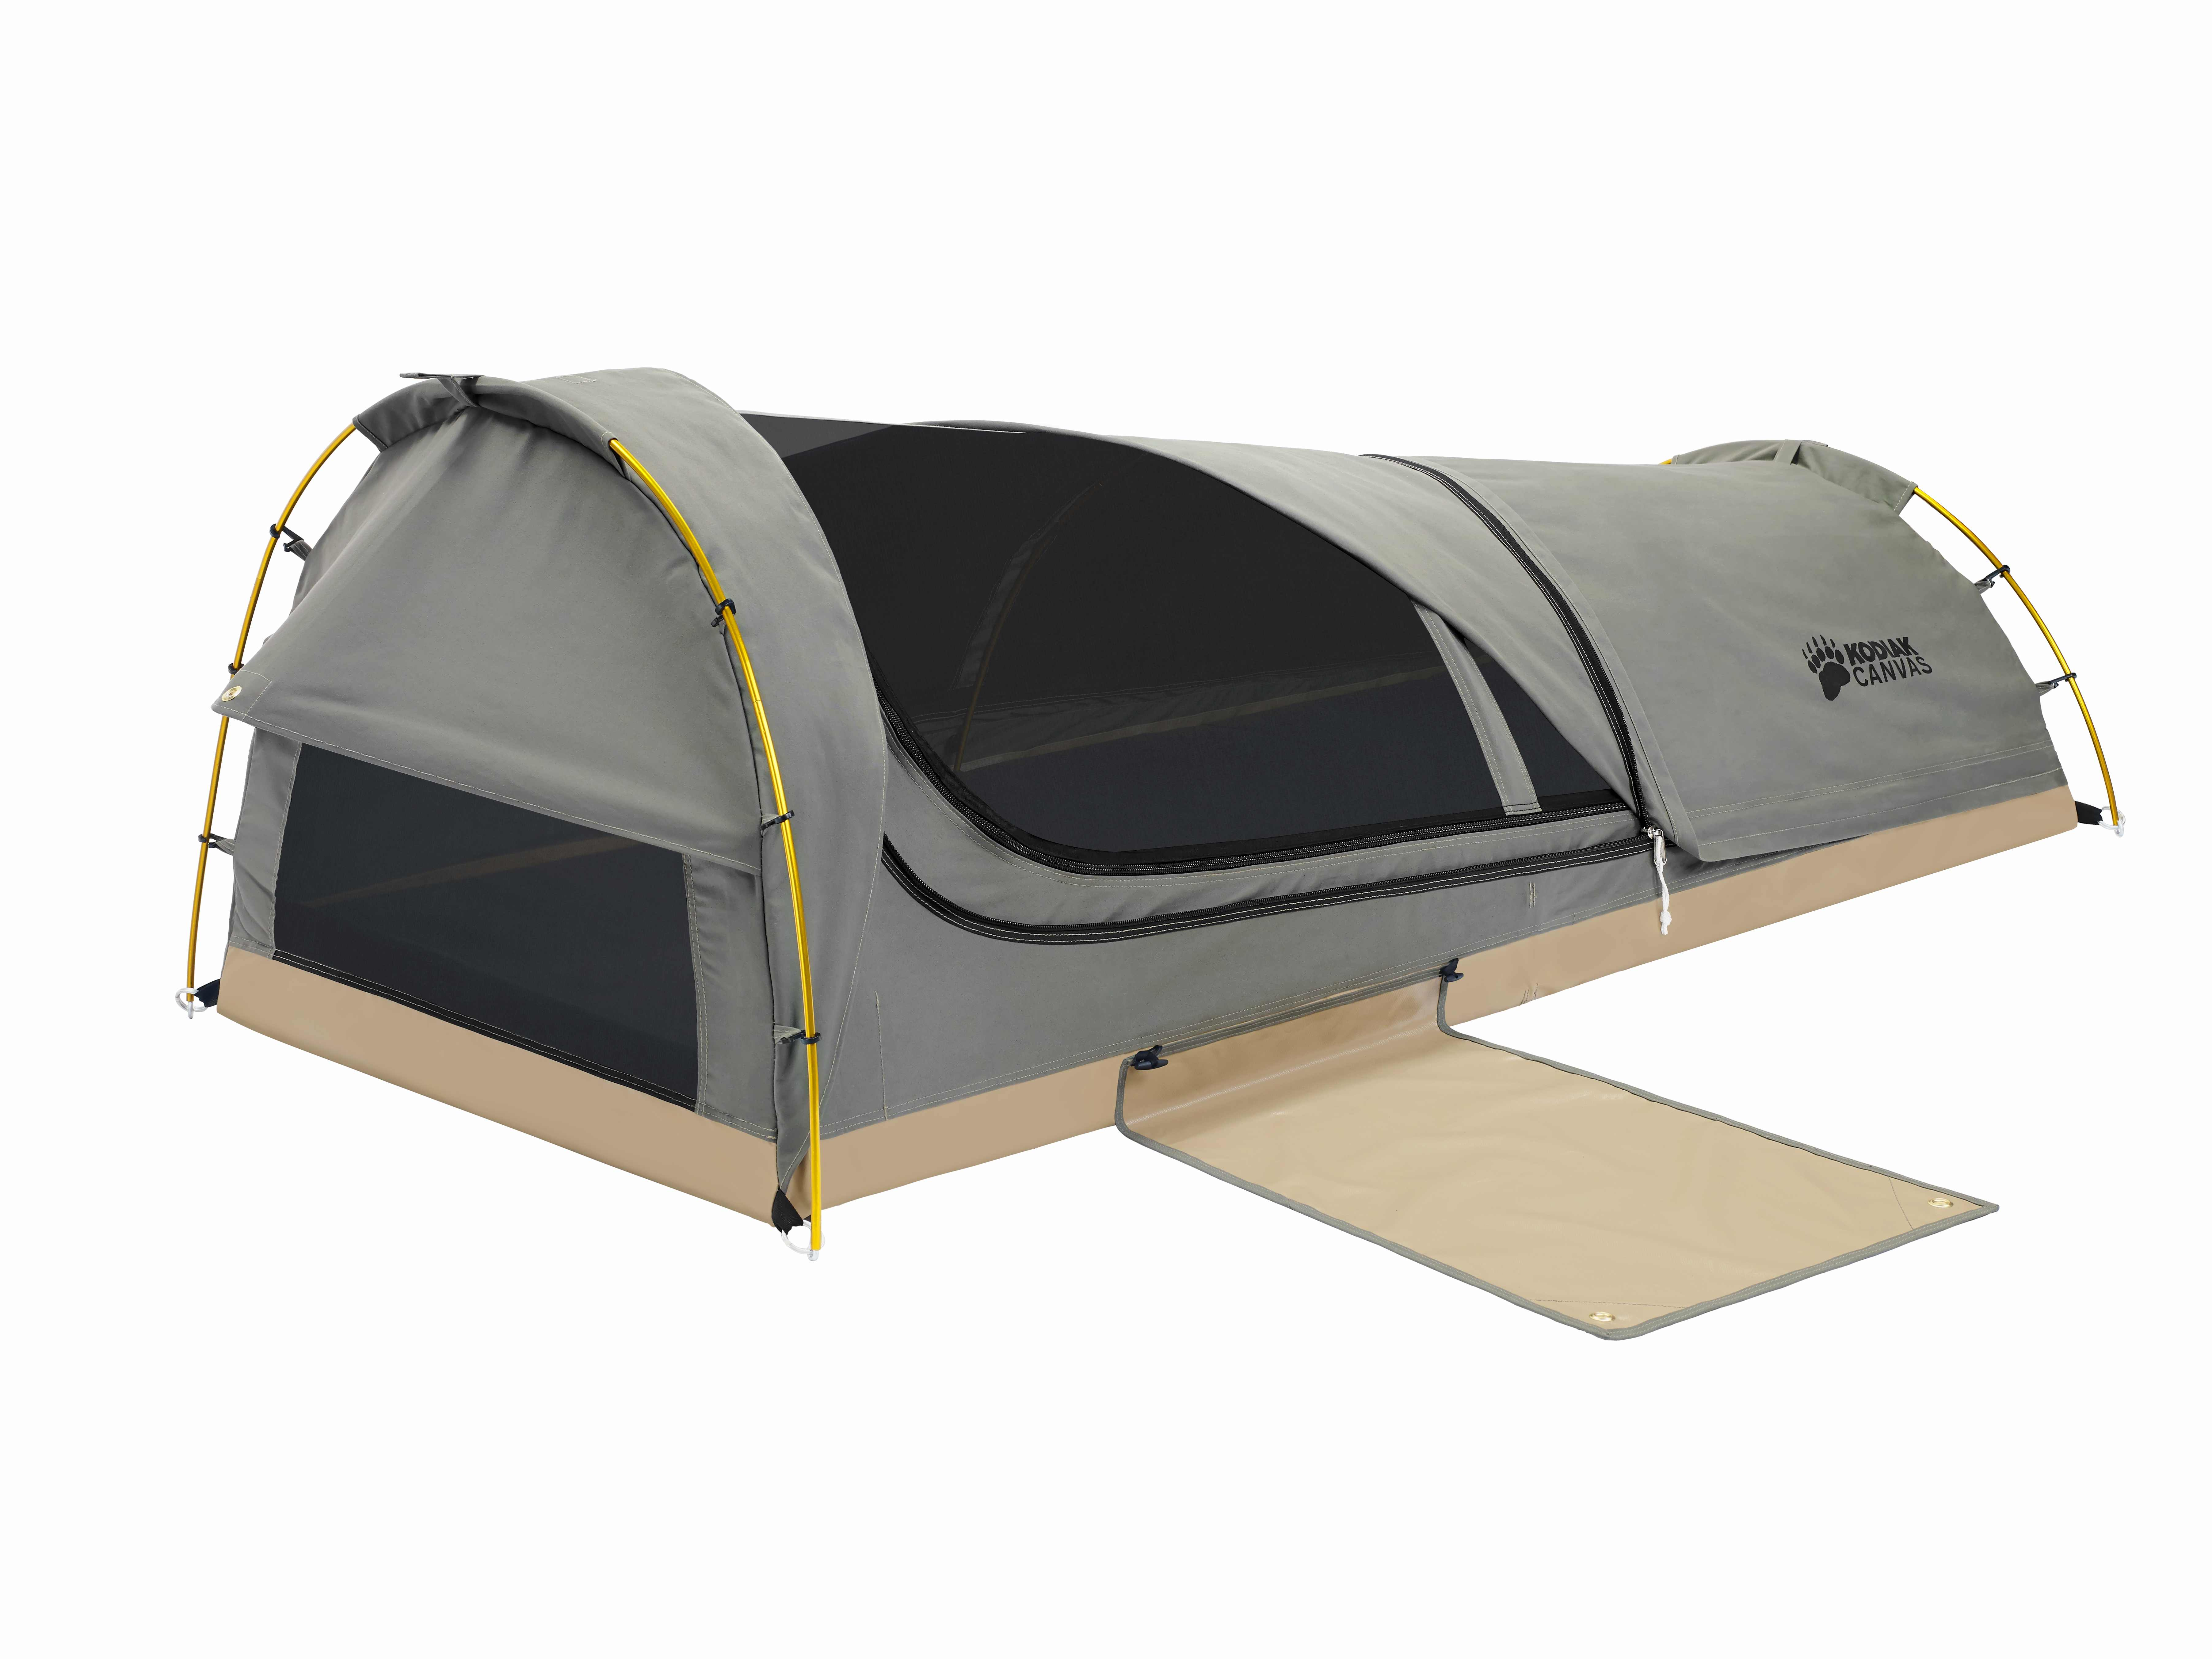 Homeu003eKodiak Canvas Tentsu003eFlex-Bow Canvas Tents u003e Swag 1 person Canvas Tent  sc 1 st  Kodiak Flex Bow Tents & Swag 1 person Canvas Tent